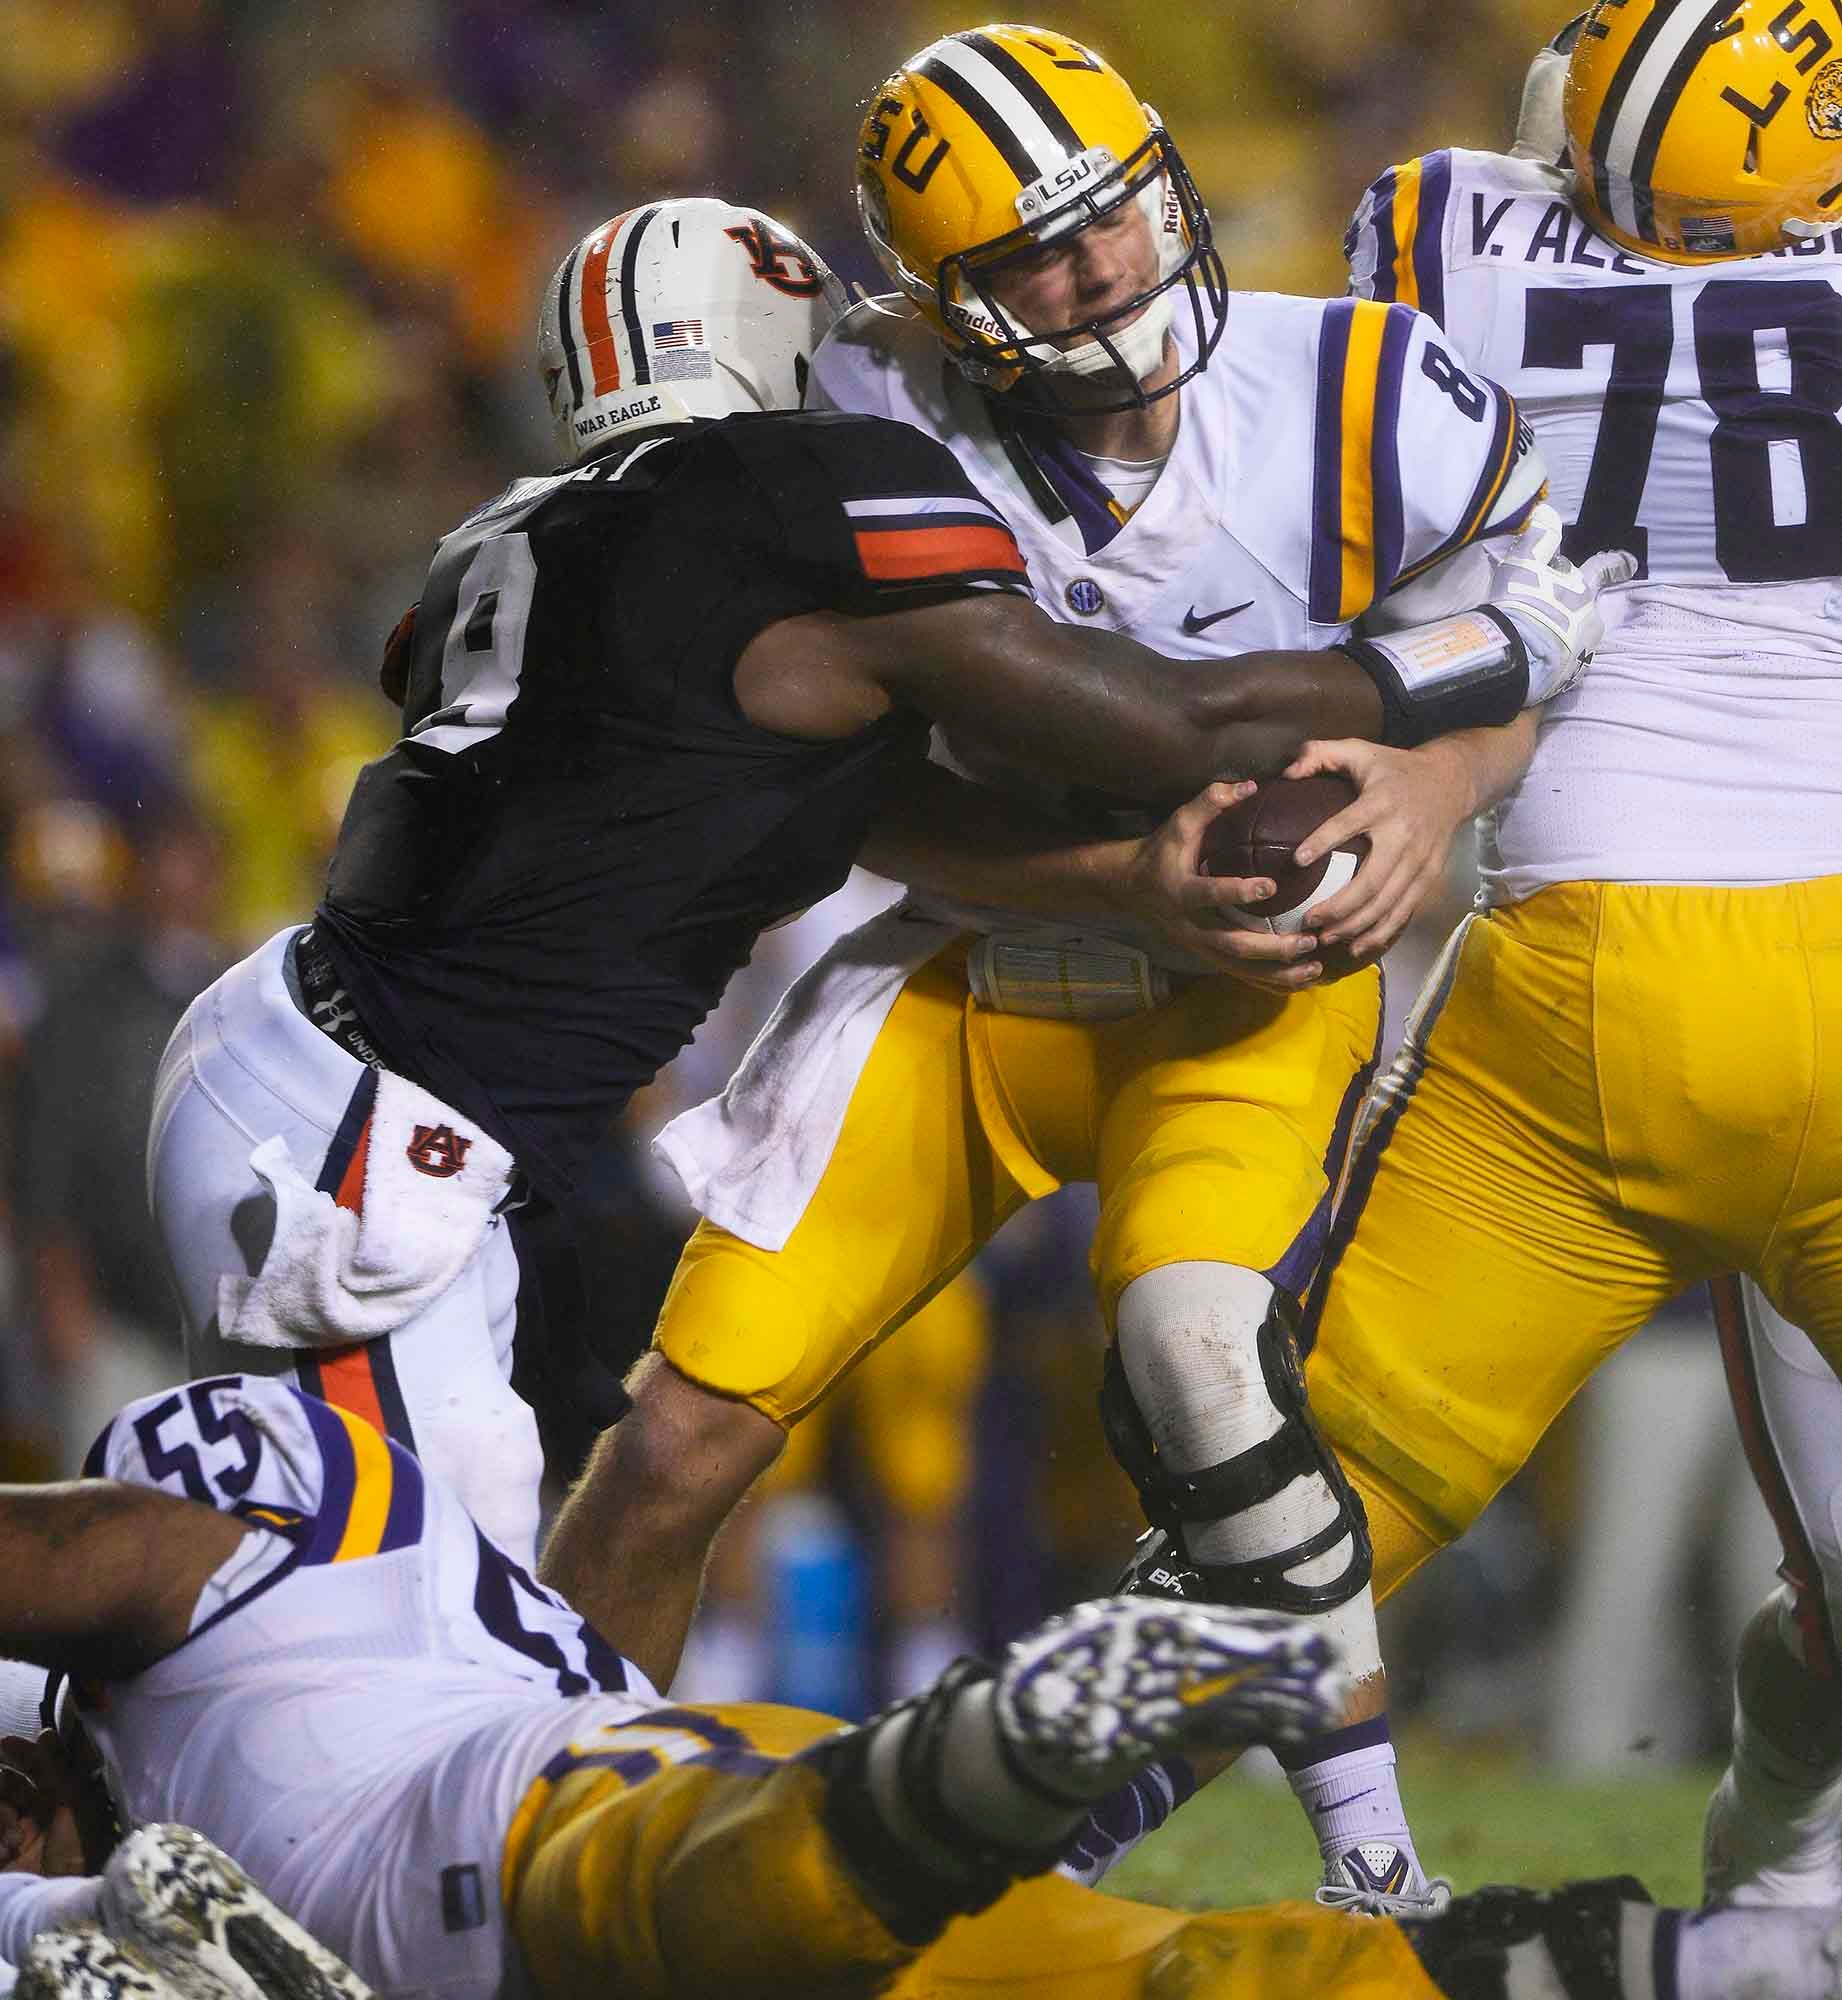 Auburn made some good plays against LSU, including this sack of quarterback Zach Mettenberger that c